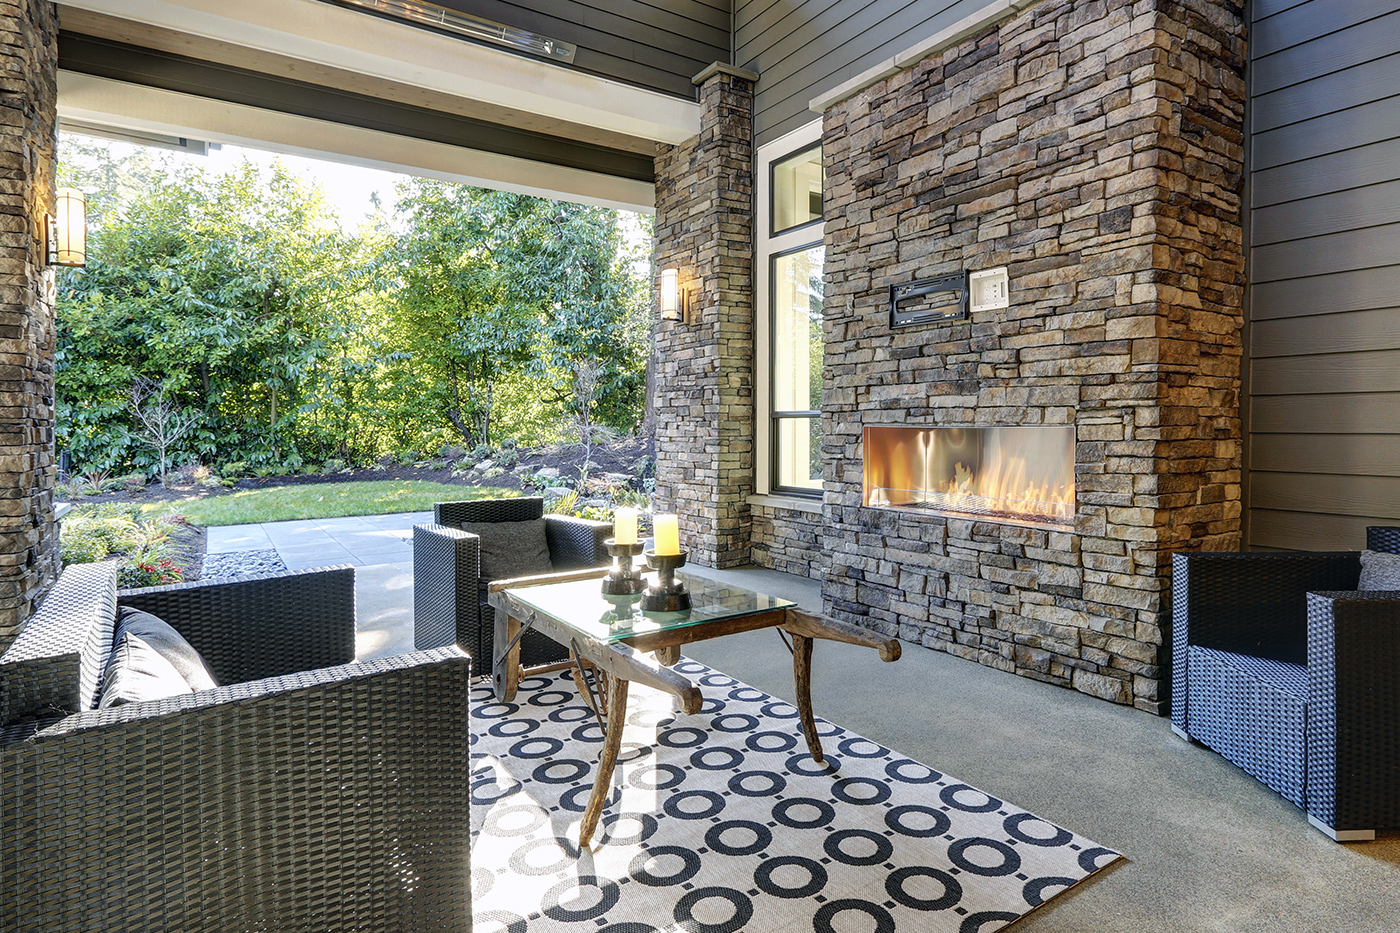 FIREPLACES / BBQ'S / PATIO HEATERS - Call us to hook up your gas appliances. We also install and service fireplaces, patio heaters and outdoor fire-pits (gas).